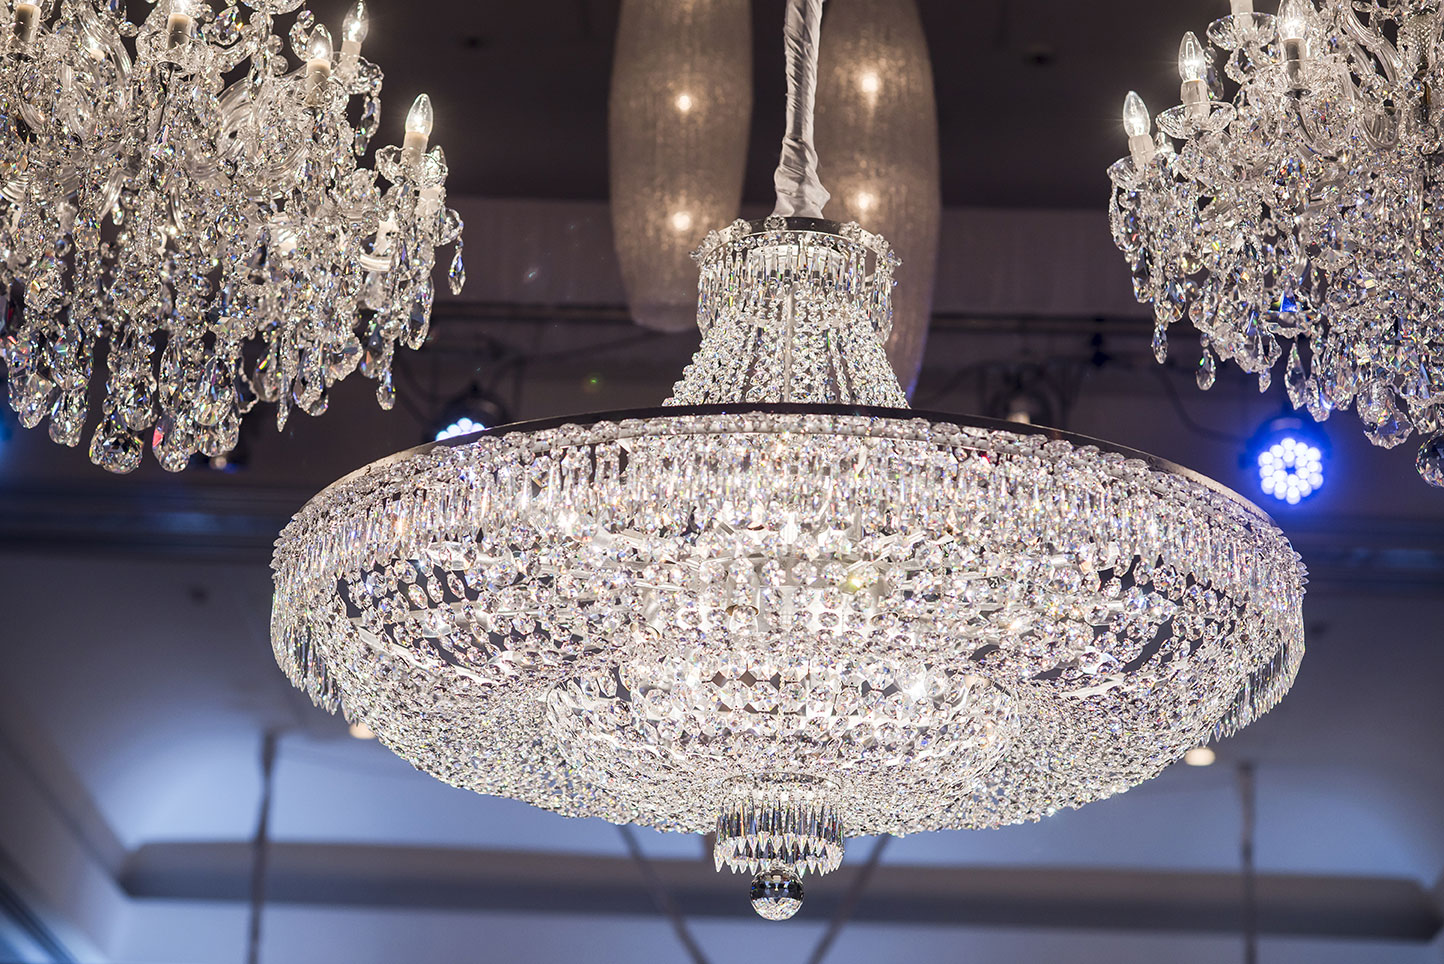 Crystal Palace Best Selling Chandeliers in 2018